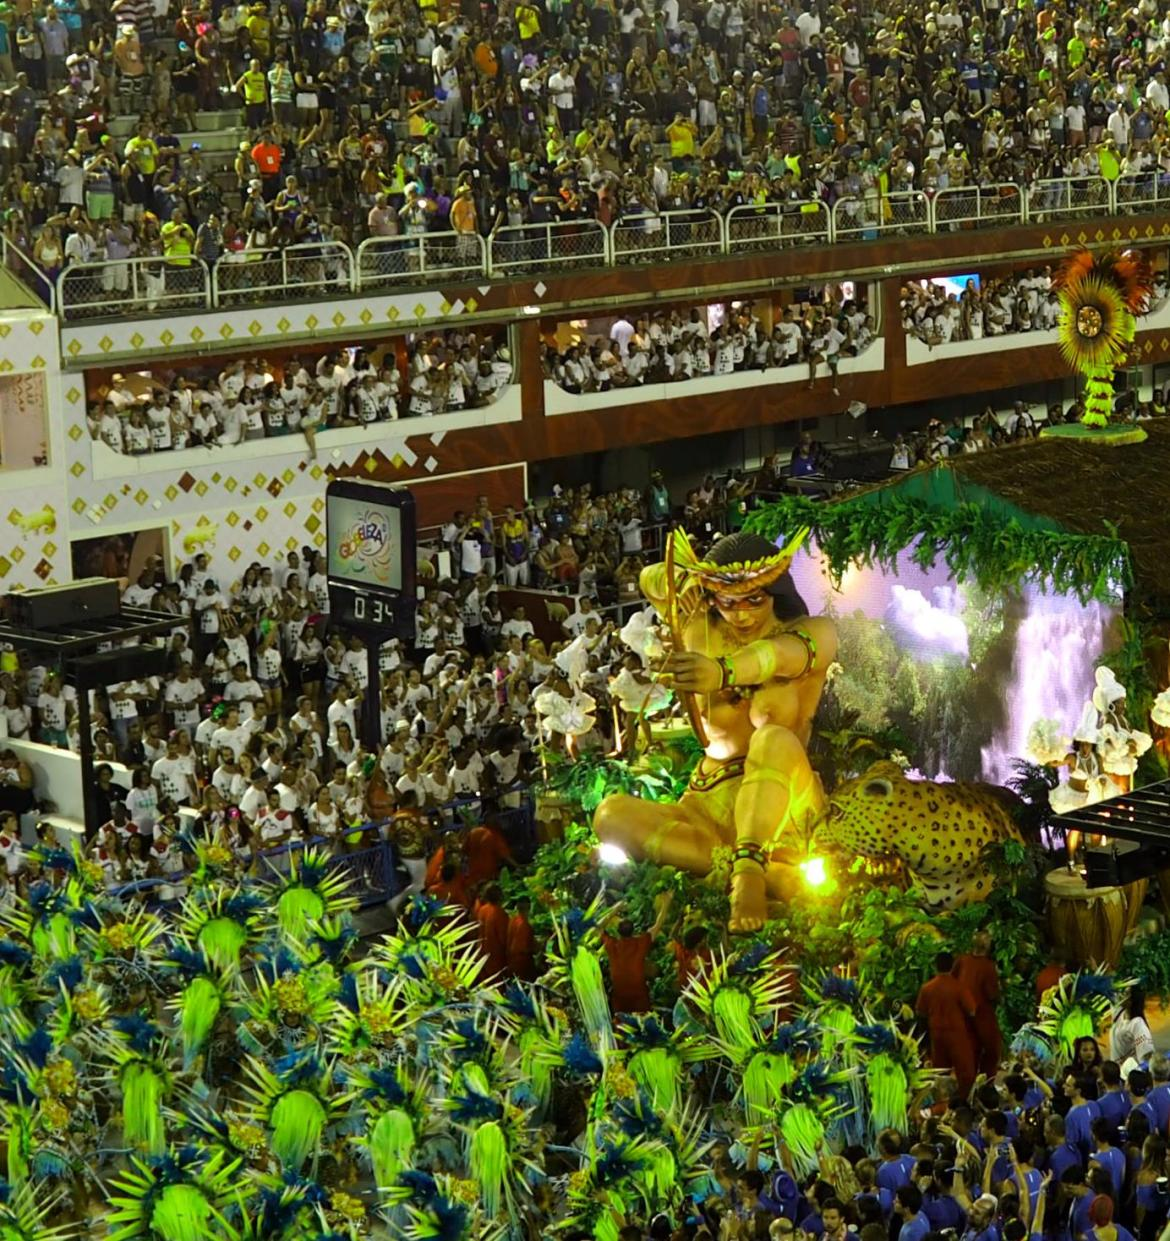 Carnaval in Rio: 3 + 1 Best Ways to Celebrate